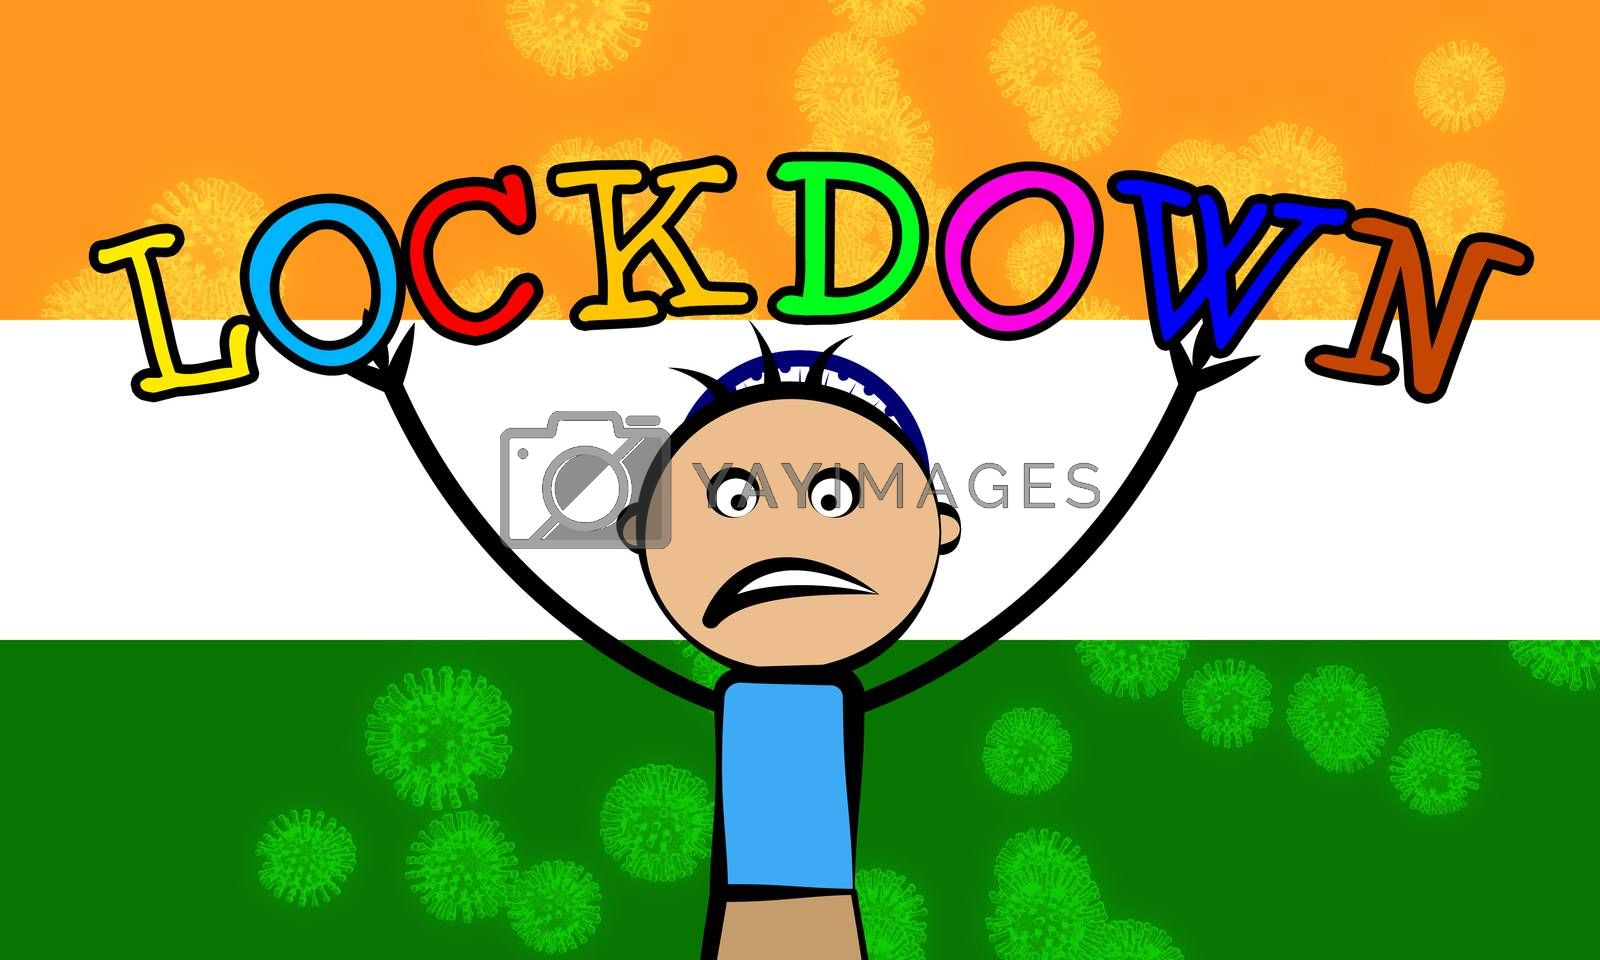 India kids lockdown preventing covid19 epidemic and outbreak. Covid 19 Indian precaution to isolate children from disease infection - 3d Illustration